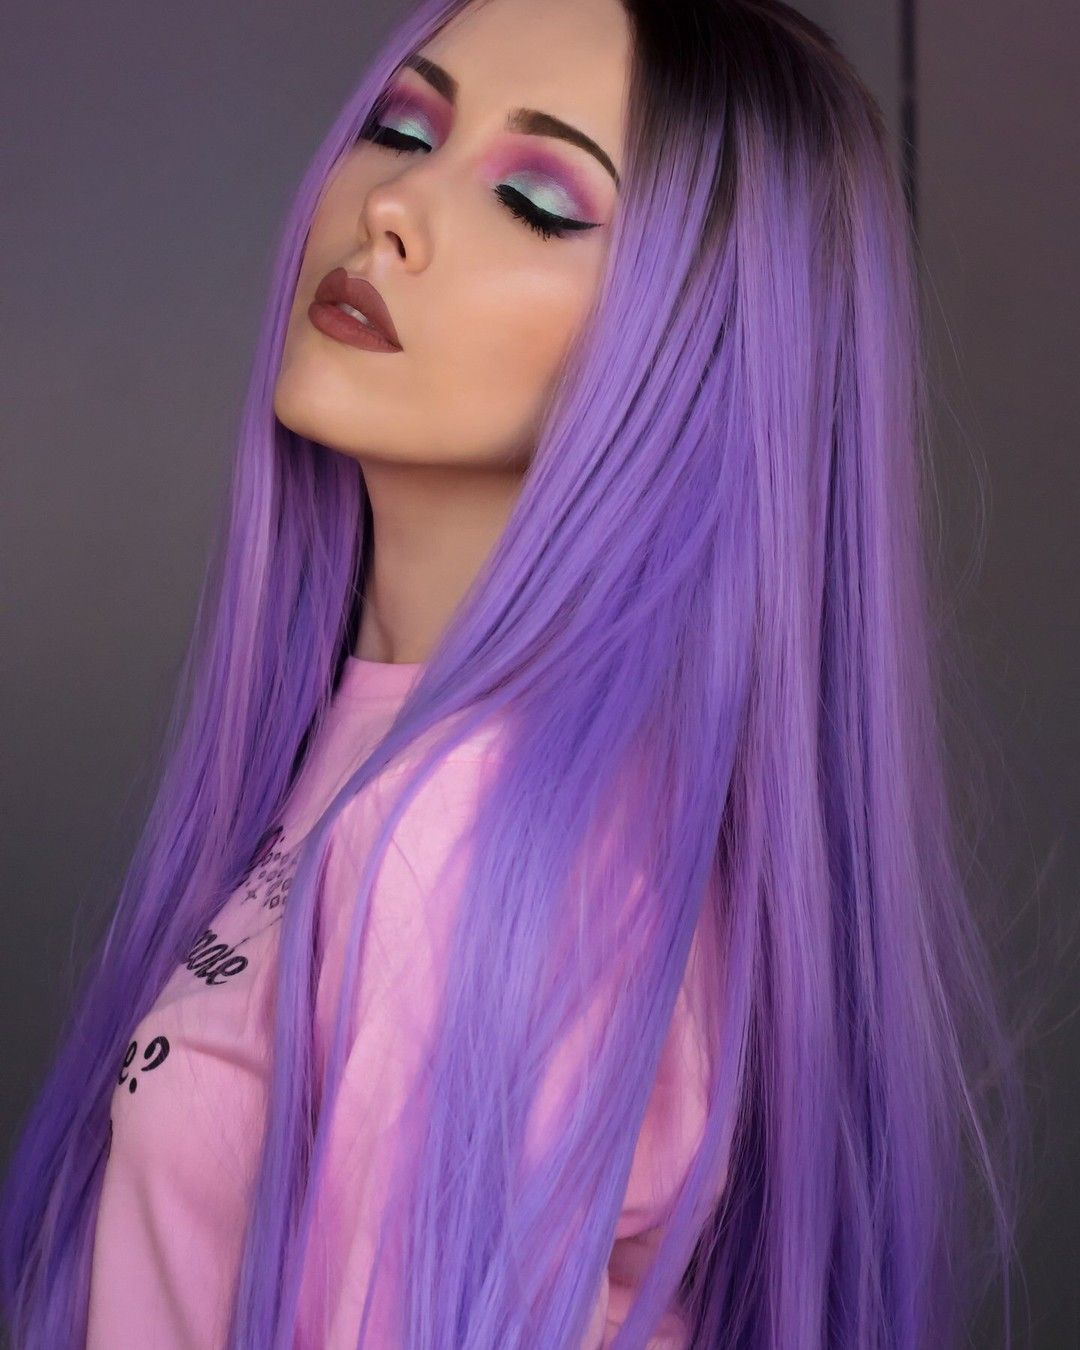 purple hair style purple hair hair colors hair coloring wig 2569